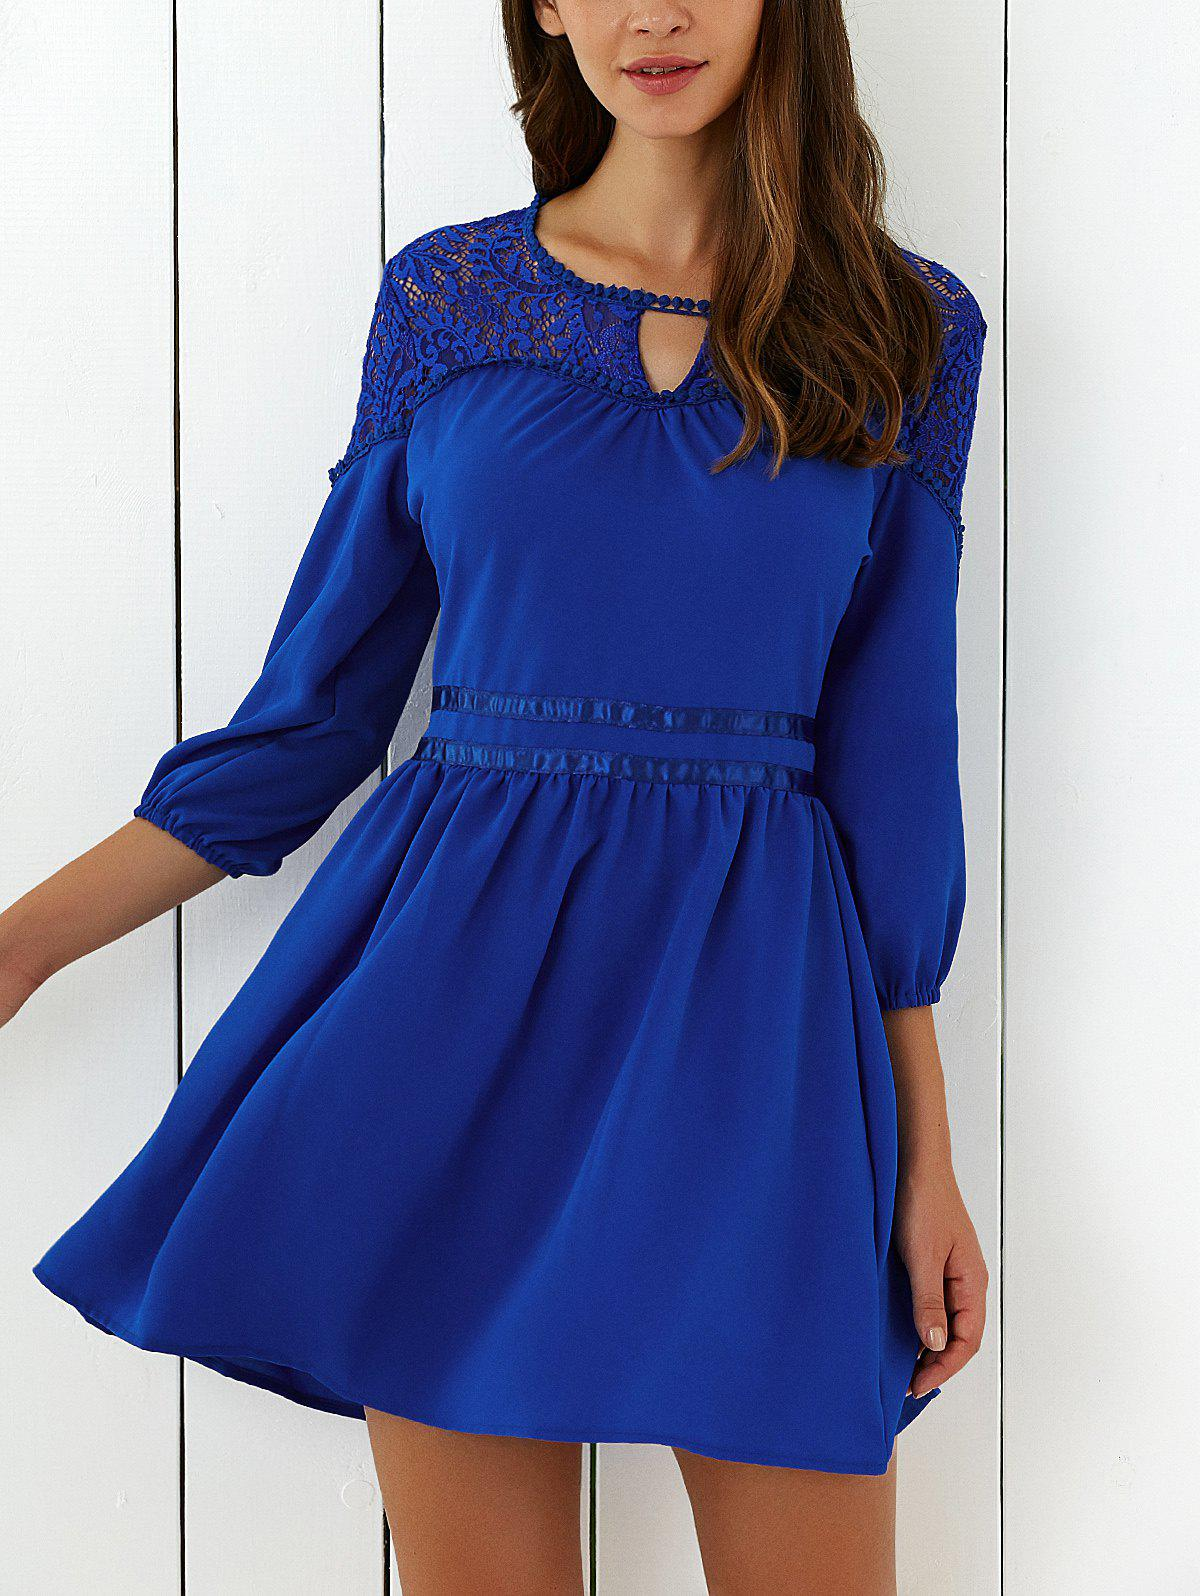 Lace Spliced 3/4 Sleeve Flare Mini Dress